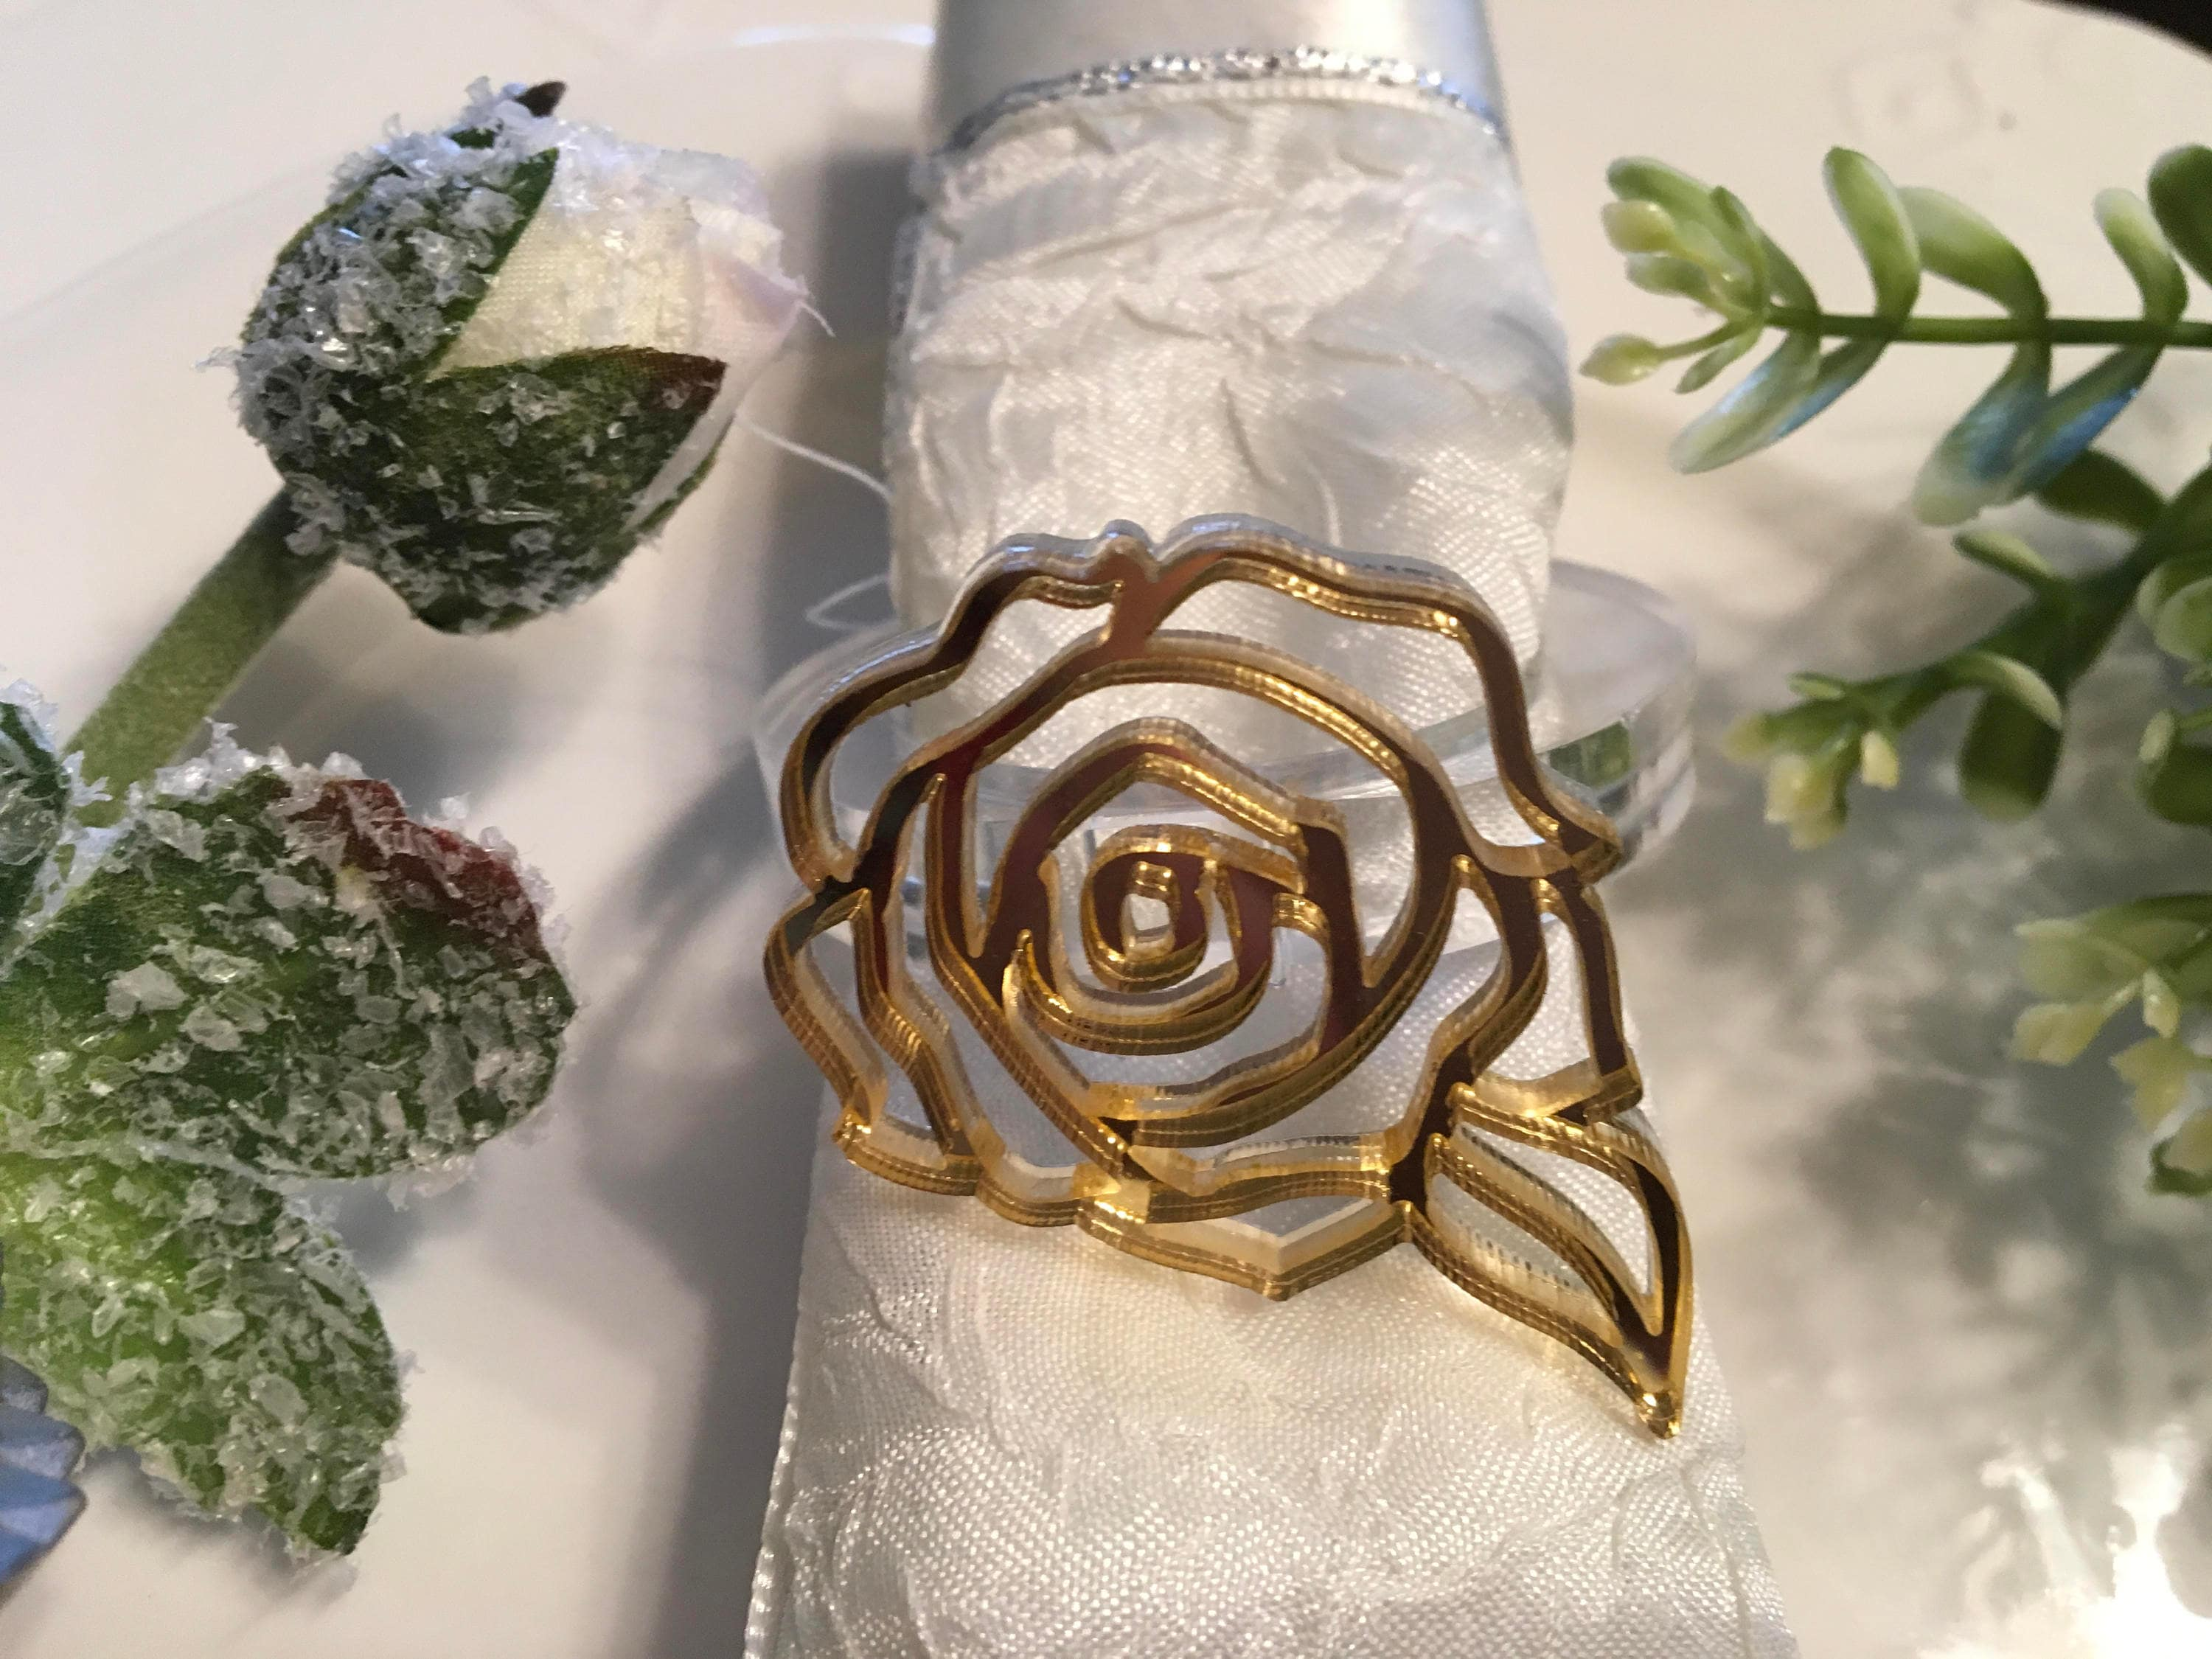 Flower Napkin Ring Holders Filigree Gold Rose Acrylic Floral Wedding